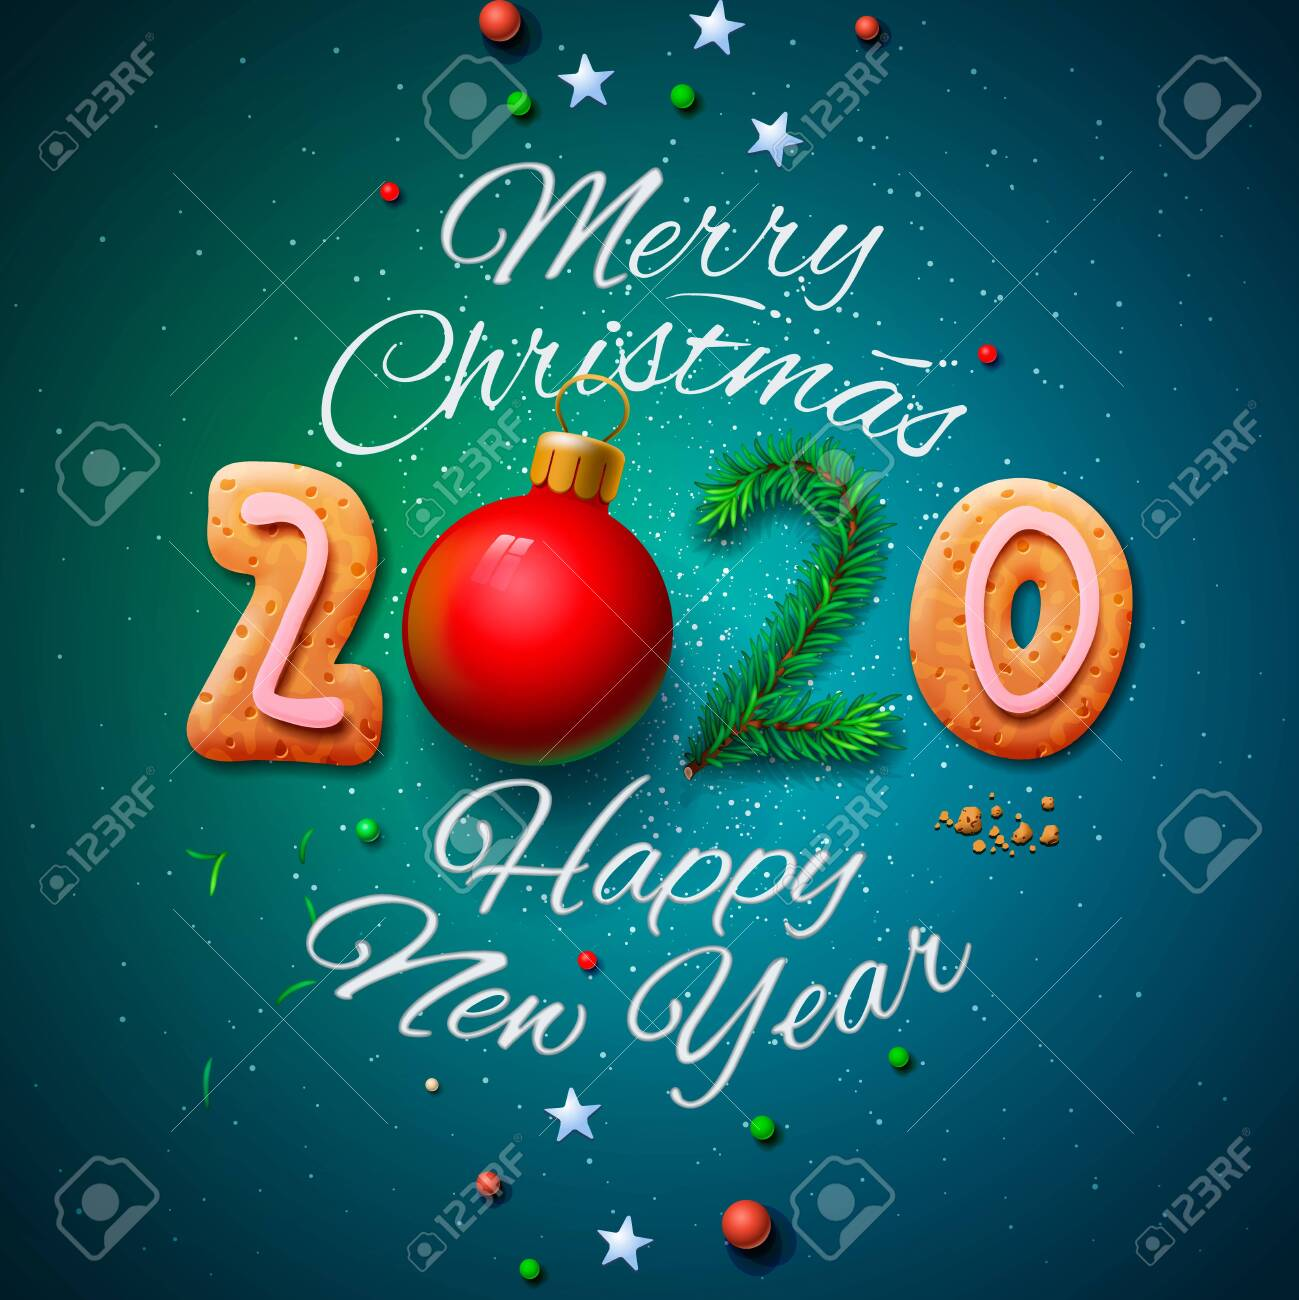 Christmas 2020.Merry Christmas And Happy New Year 2020 Greeting Card Vector